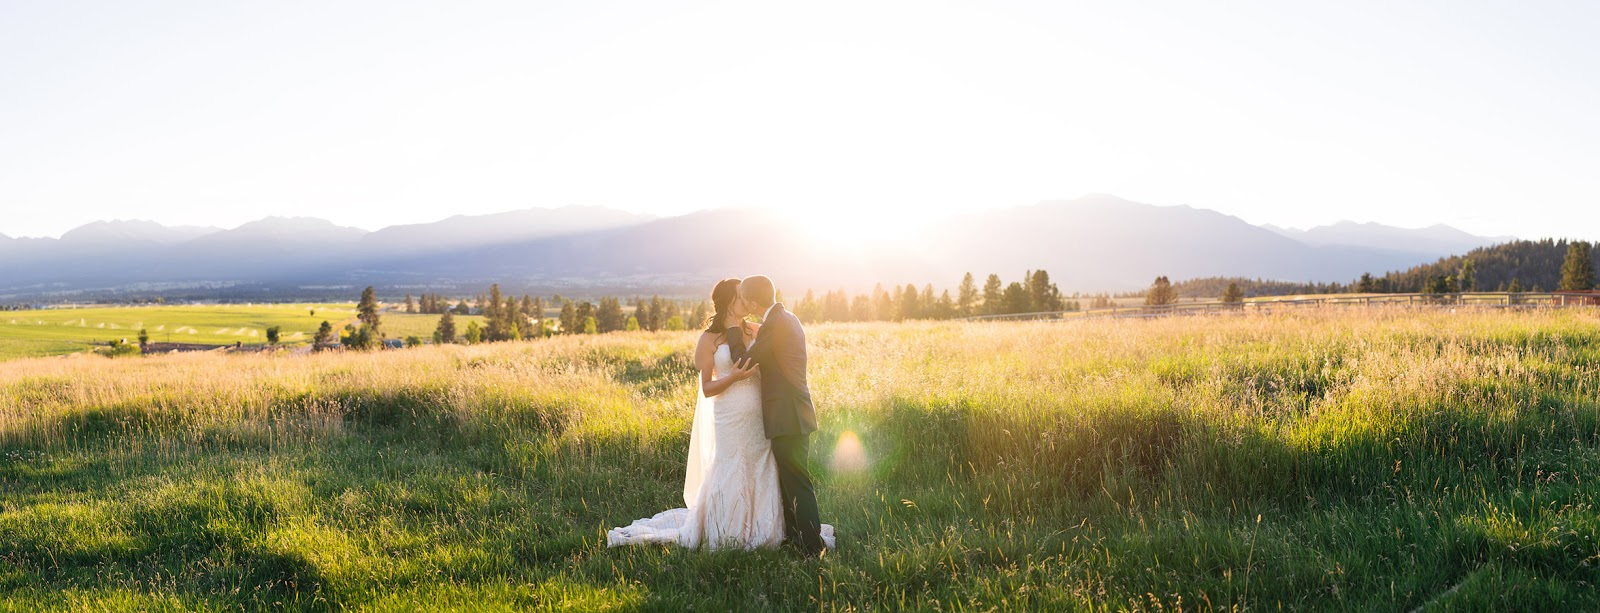 Bride, Montana, Mountains, Sunset